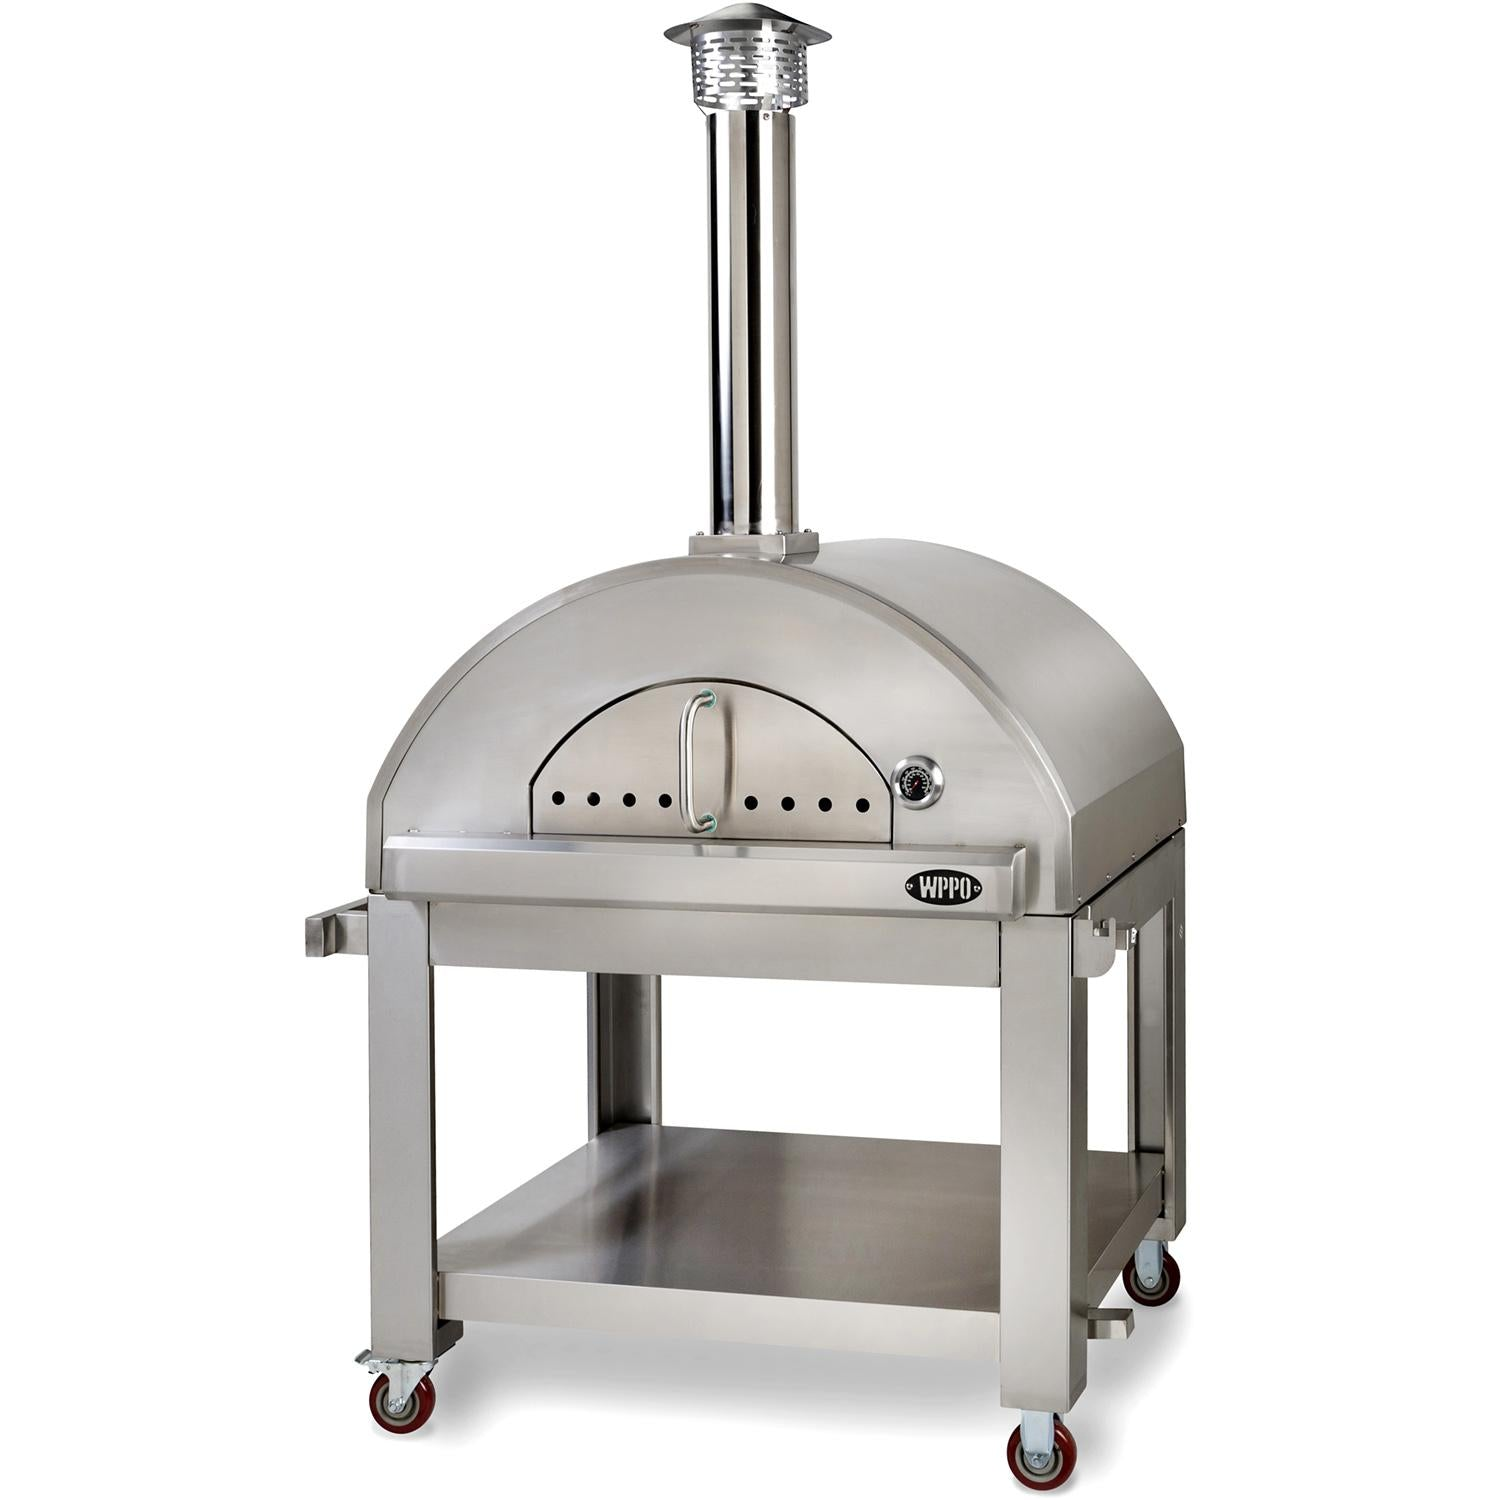 WPPO Pro 3 42-Inch Outdoor Wood-Fired Pizza Oven On Cart - WPPO3 + WPPO3STND